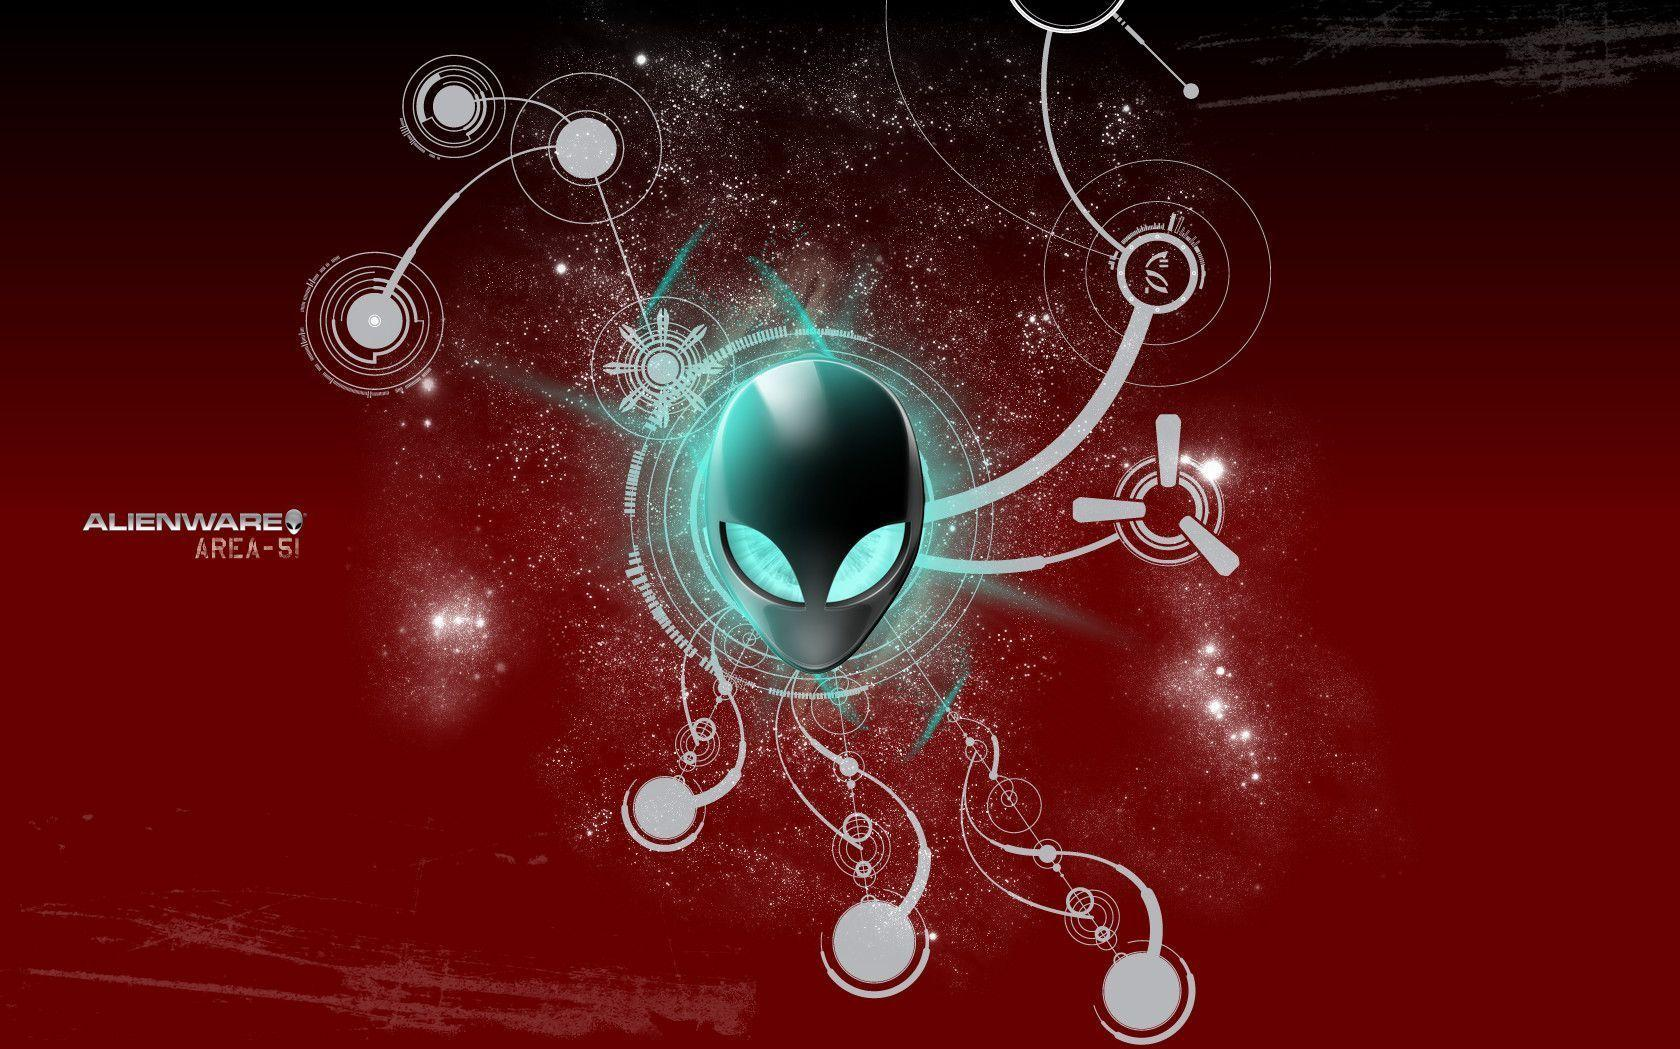 alienware wallpapers red - photo #24